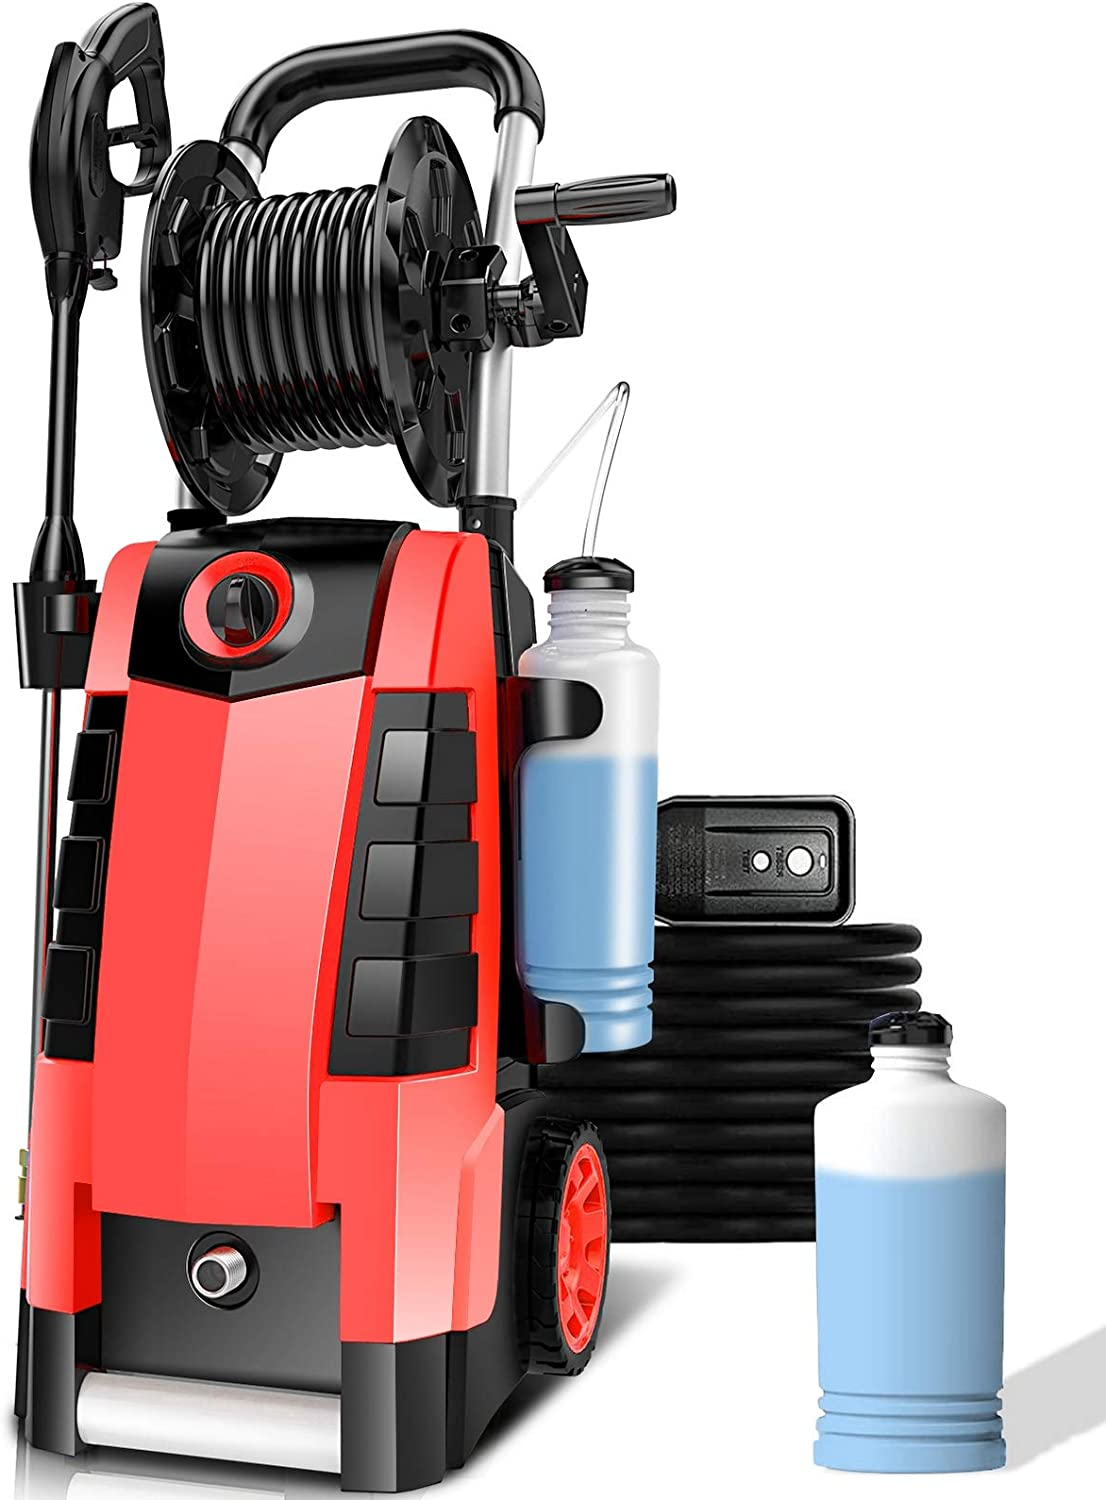 TEANDE 3800PSI Electric Pressure Washer, 2.8GPM High Pressure Power Washer 1800W Machine for Cars Fences Patios Garden Cleaning Hose Reel (Red)